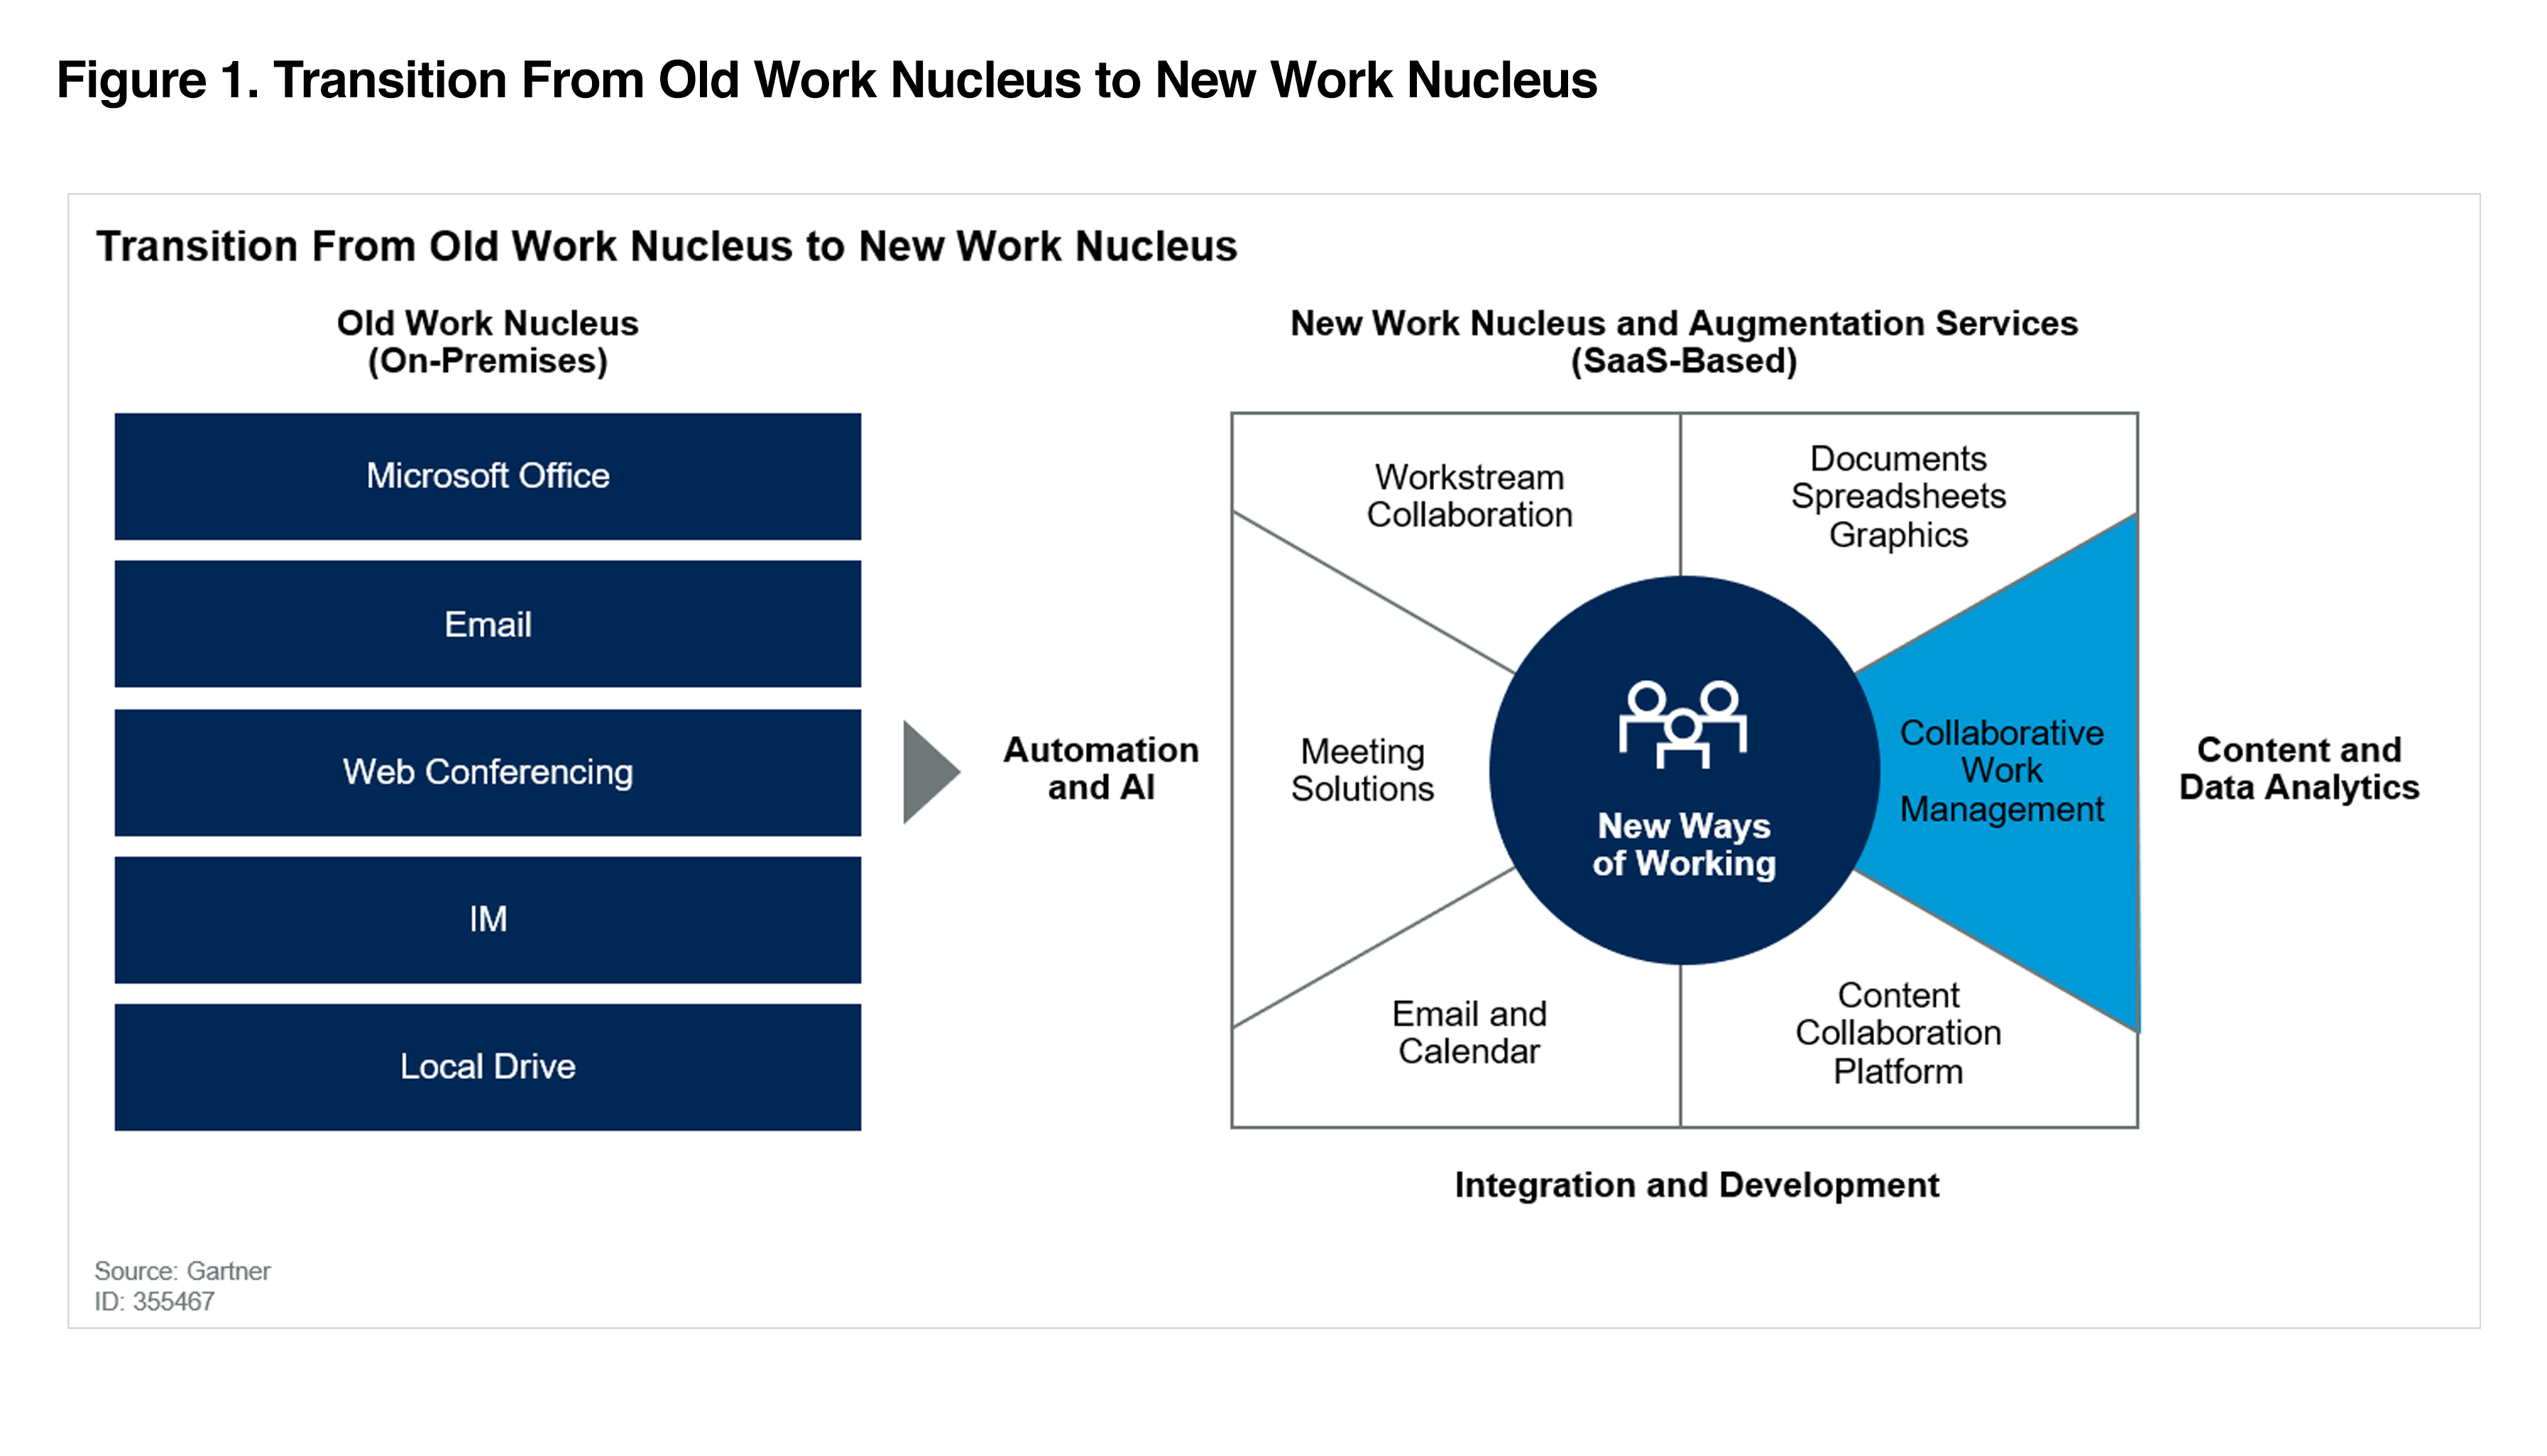 Transition from old work nucleus to new work nucleus